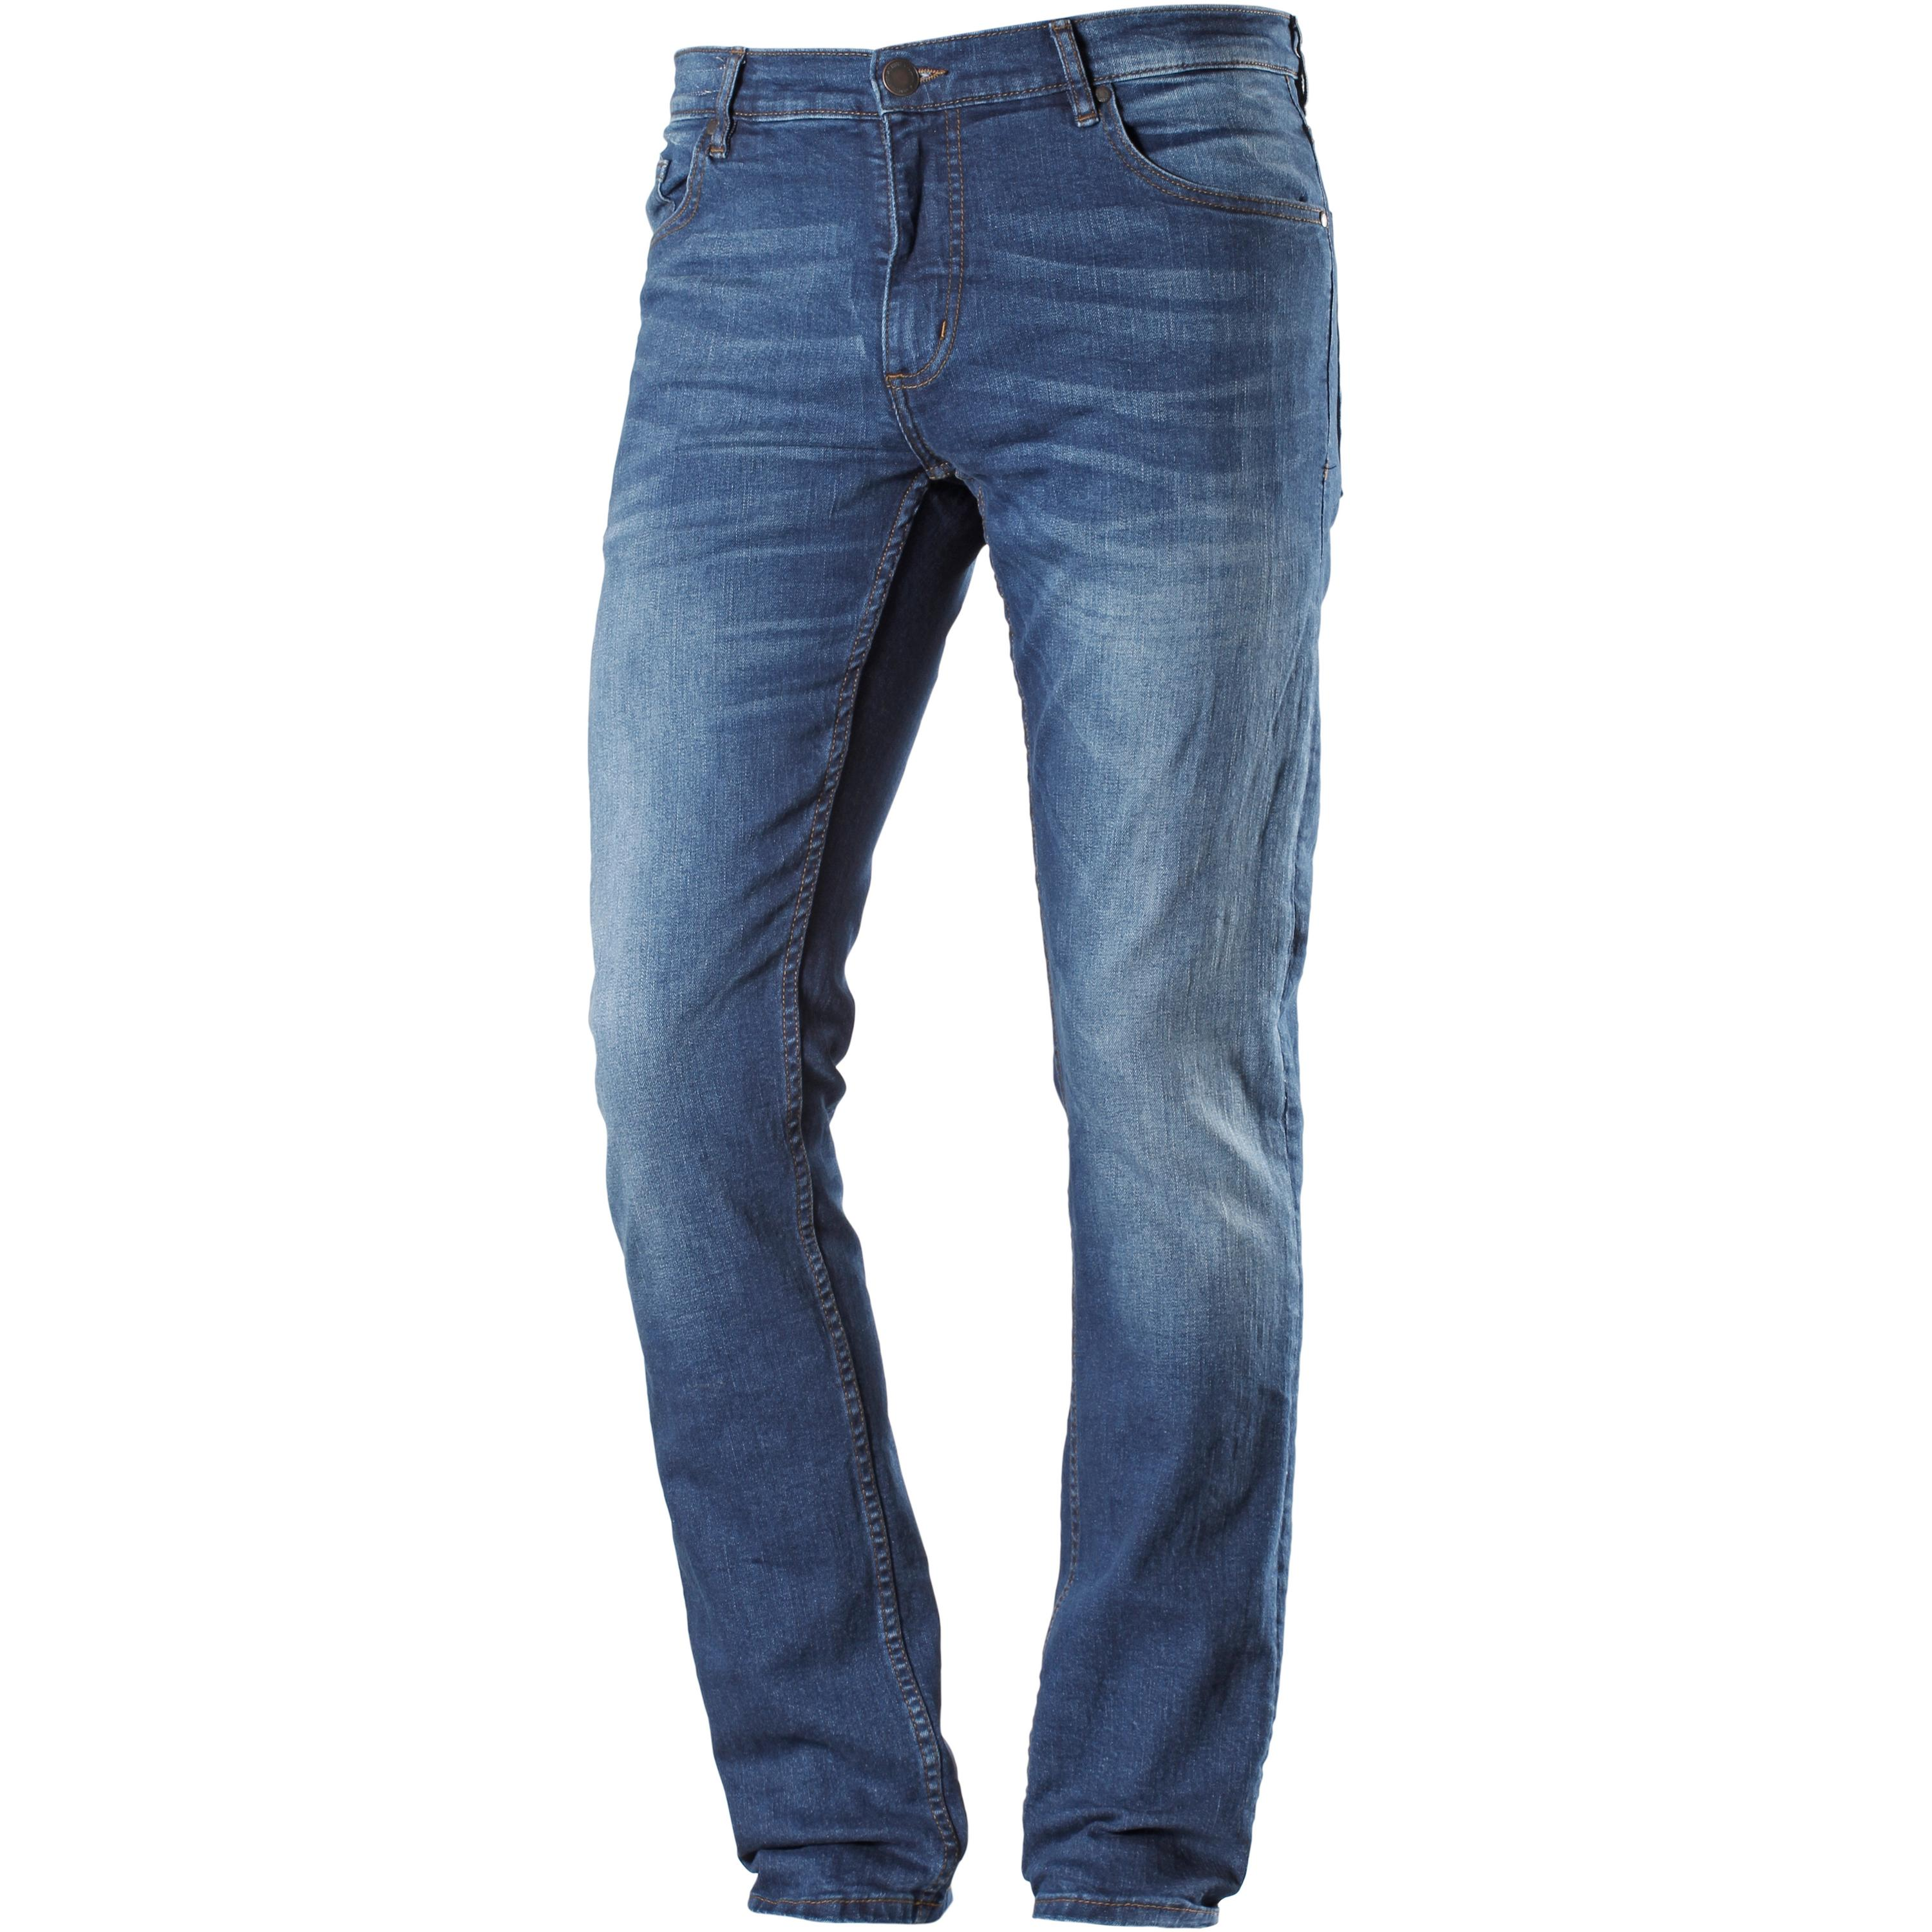 Image of Shine Original Anti Fit Jeans Herren